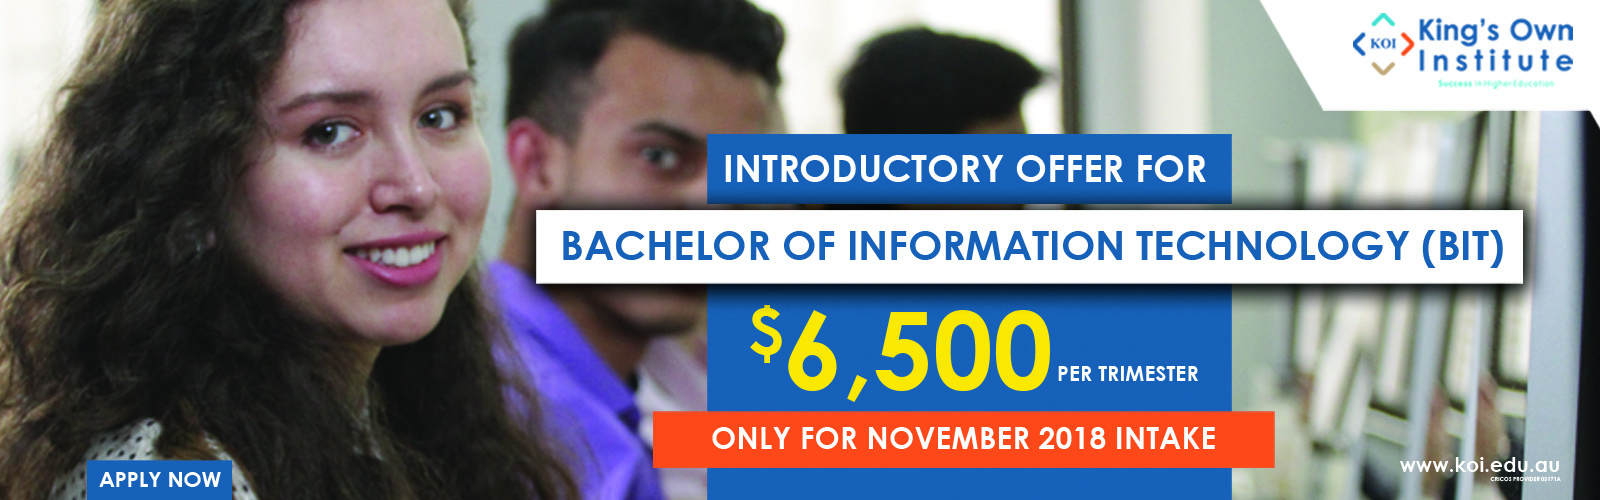 BACHELOR-OF-INFORMATION-TECHNOLOGY-BITOffer-slider-1600x500